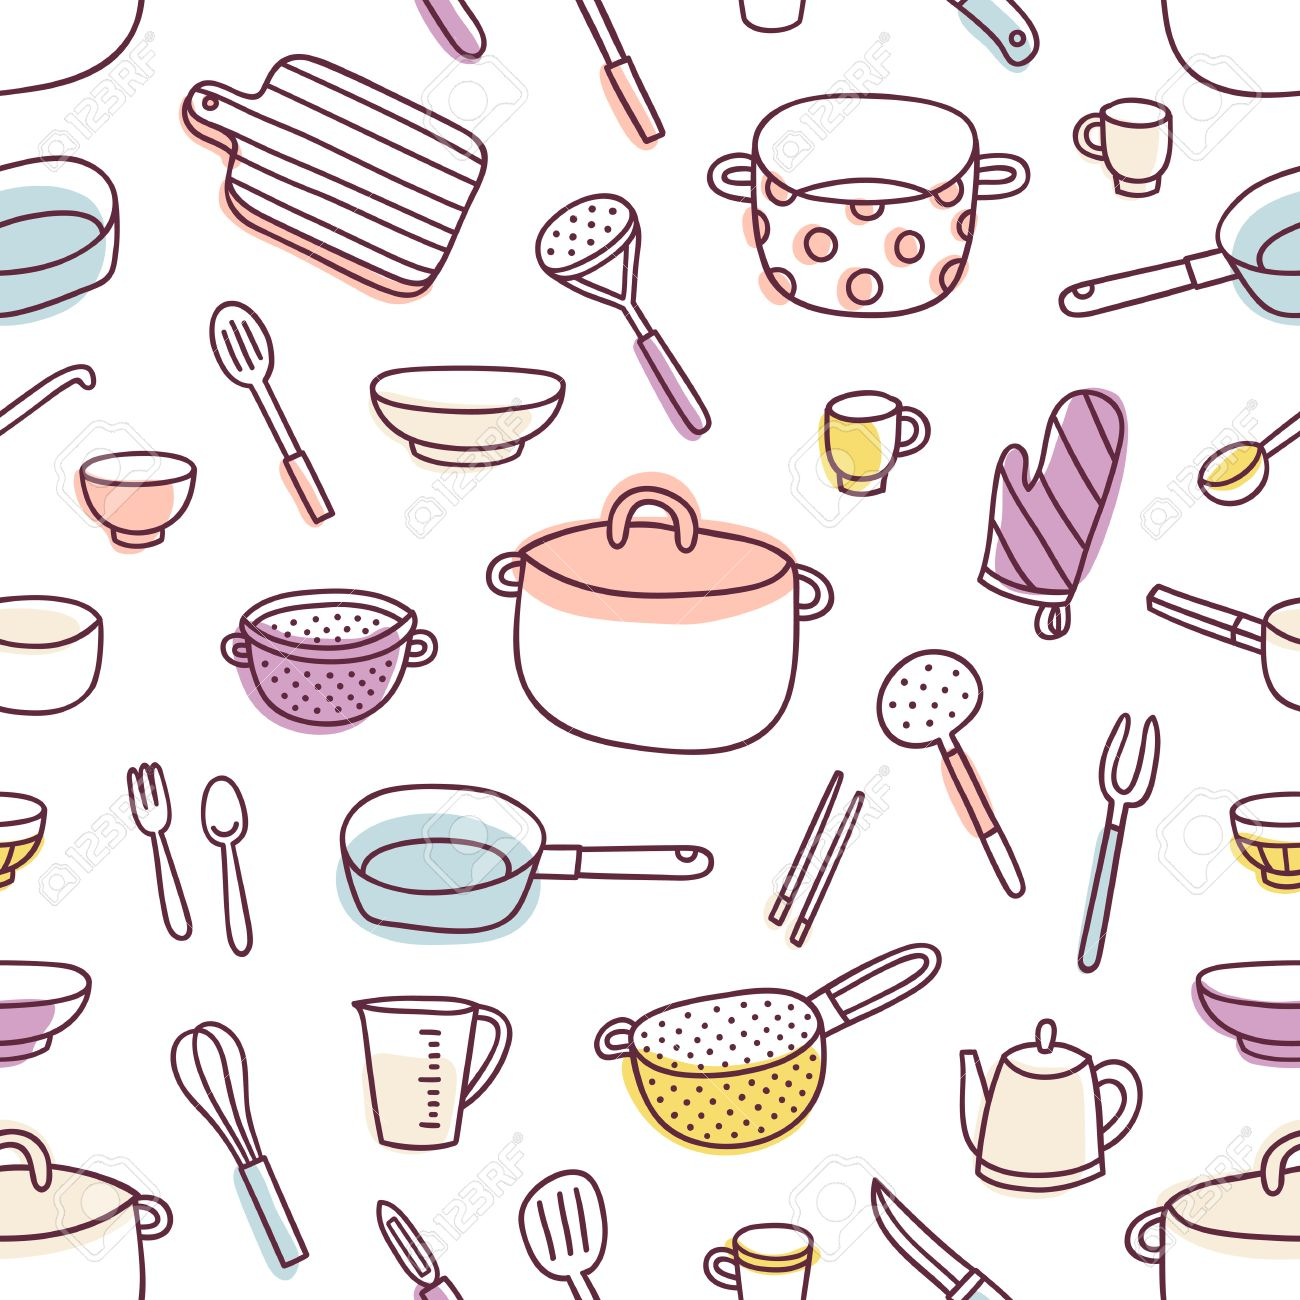 68,478 Kitchen Utensil Stock Vector Illustration And Royalty Free ...